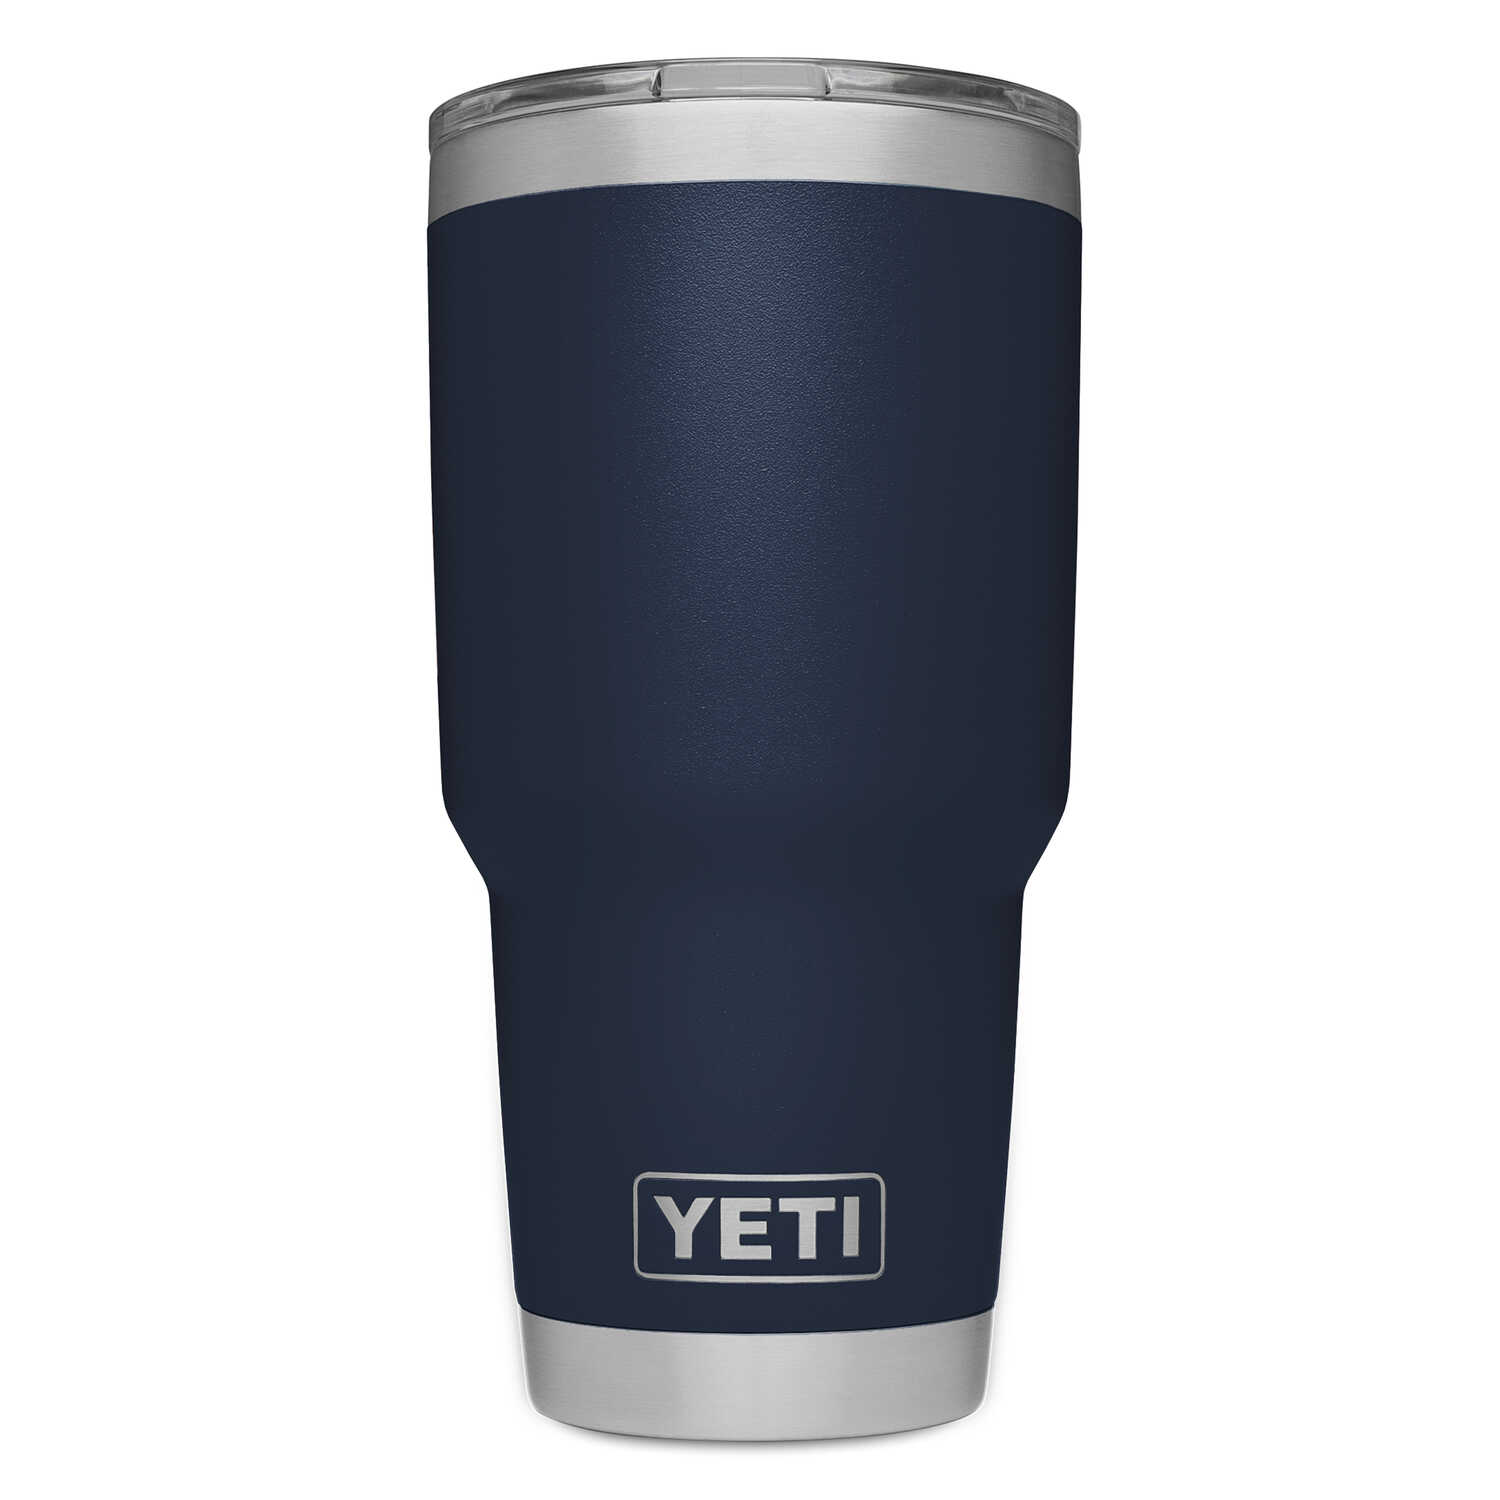 YETI  Rambler  30 oz. Insulated Tumbler  Navy